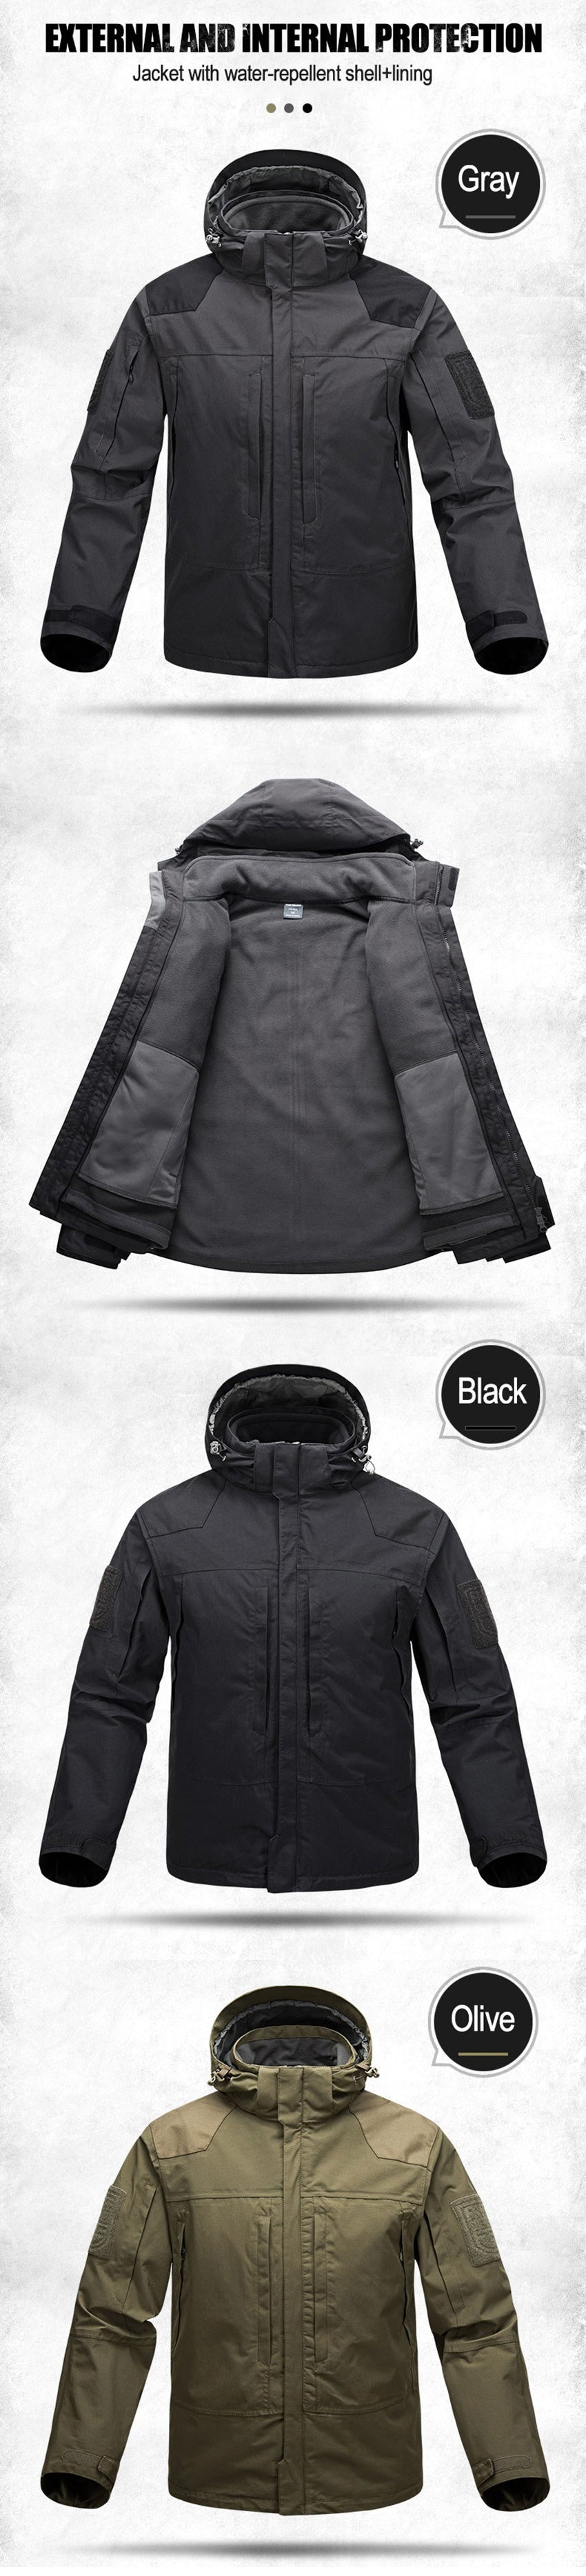 2-in-1 Waterproof Windproof Breathable Technical Tactical Jacket For Men - 3 Colors